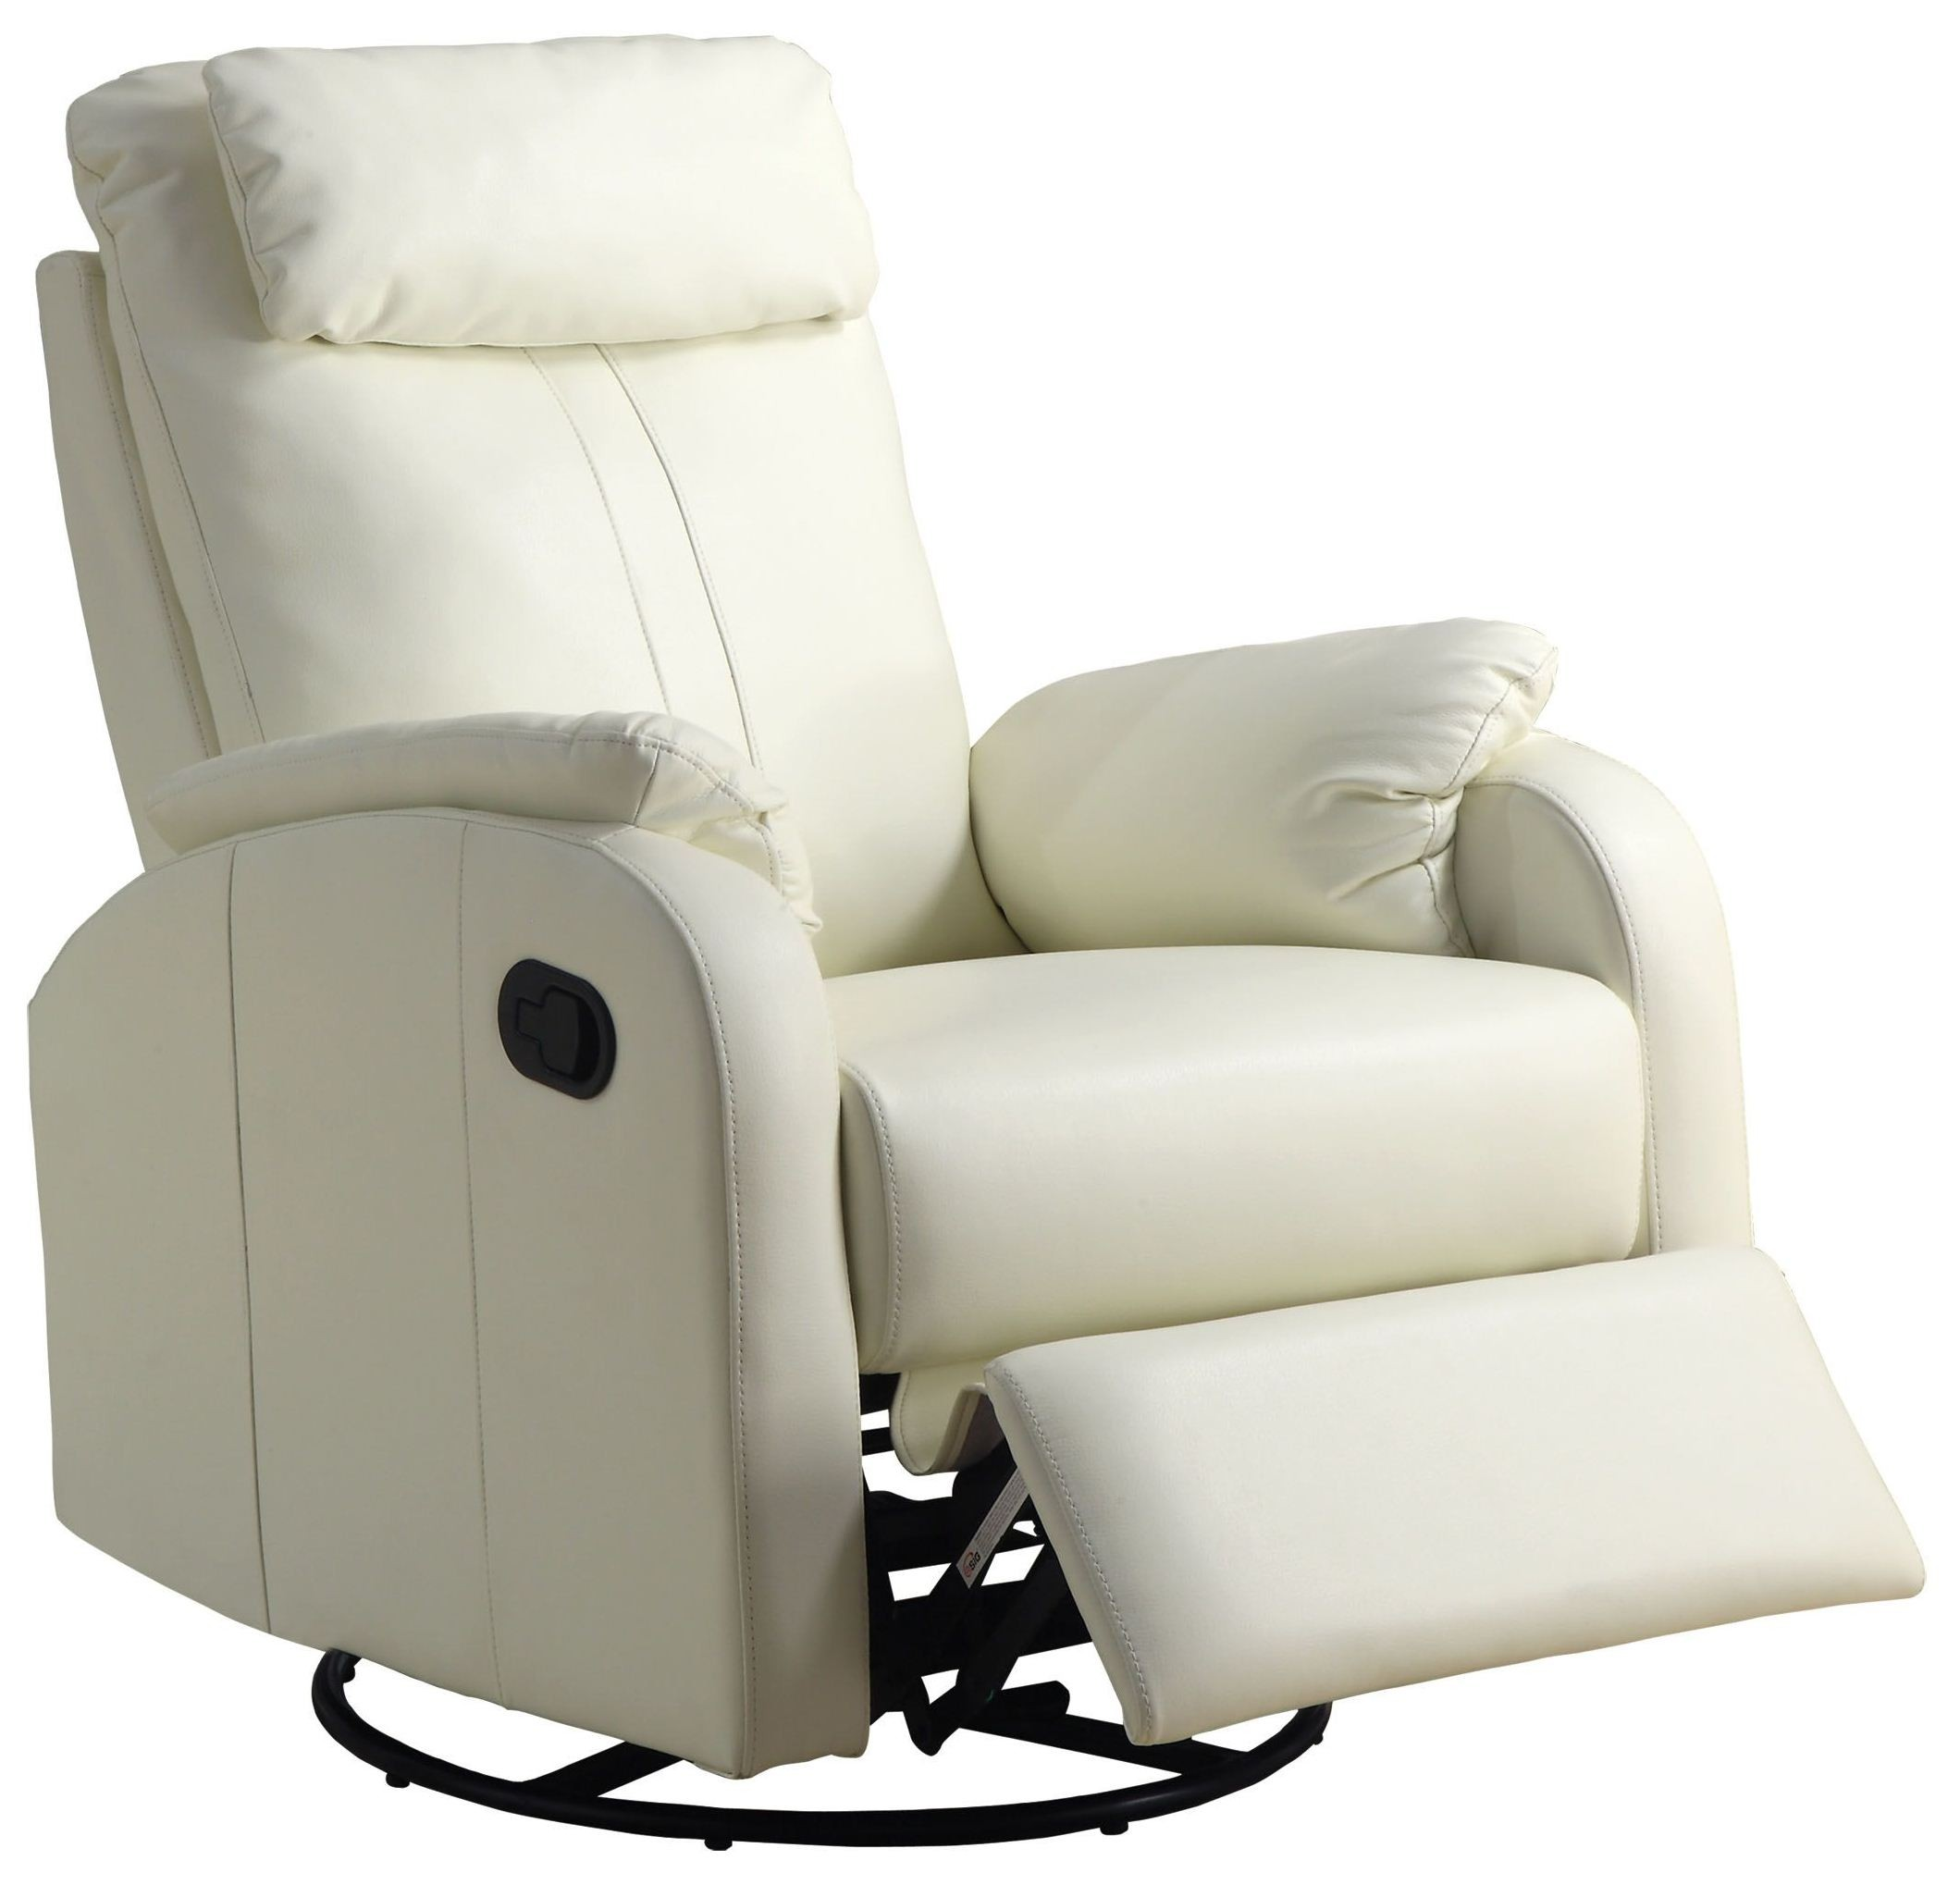 Ivory Padded Swivel Rocker Recliner From Monarch 8081iv